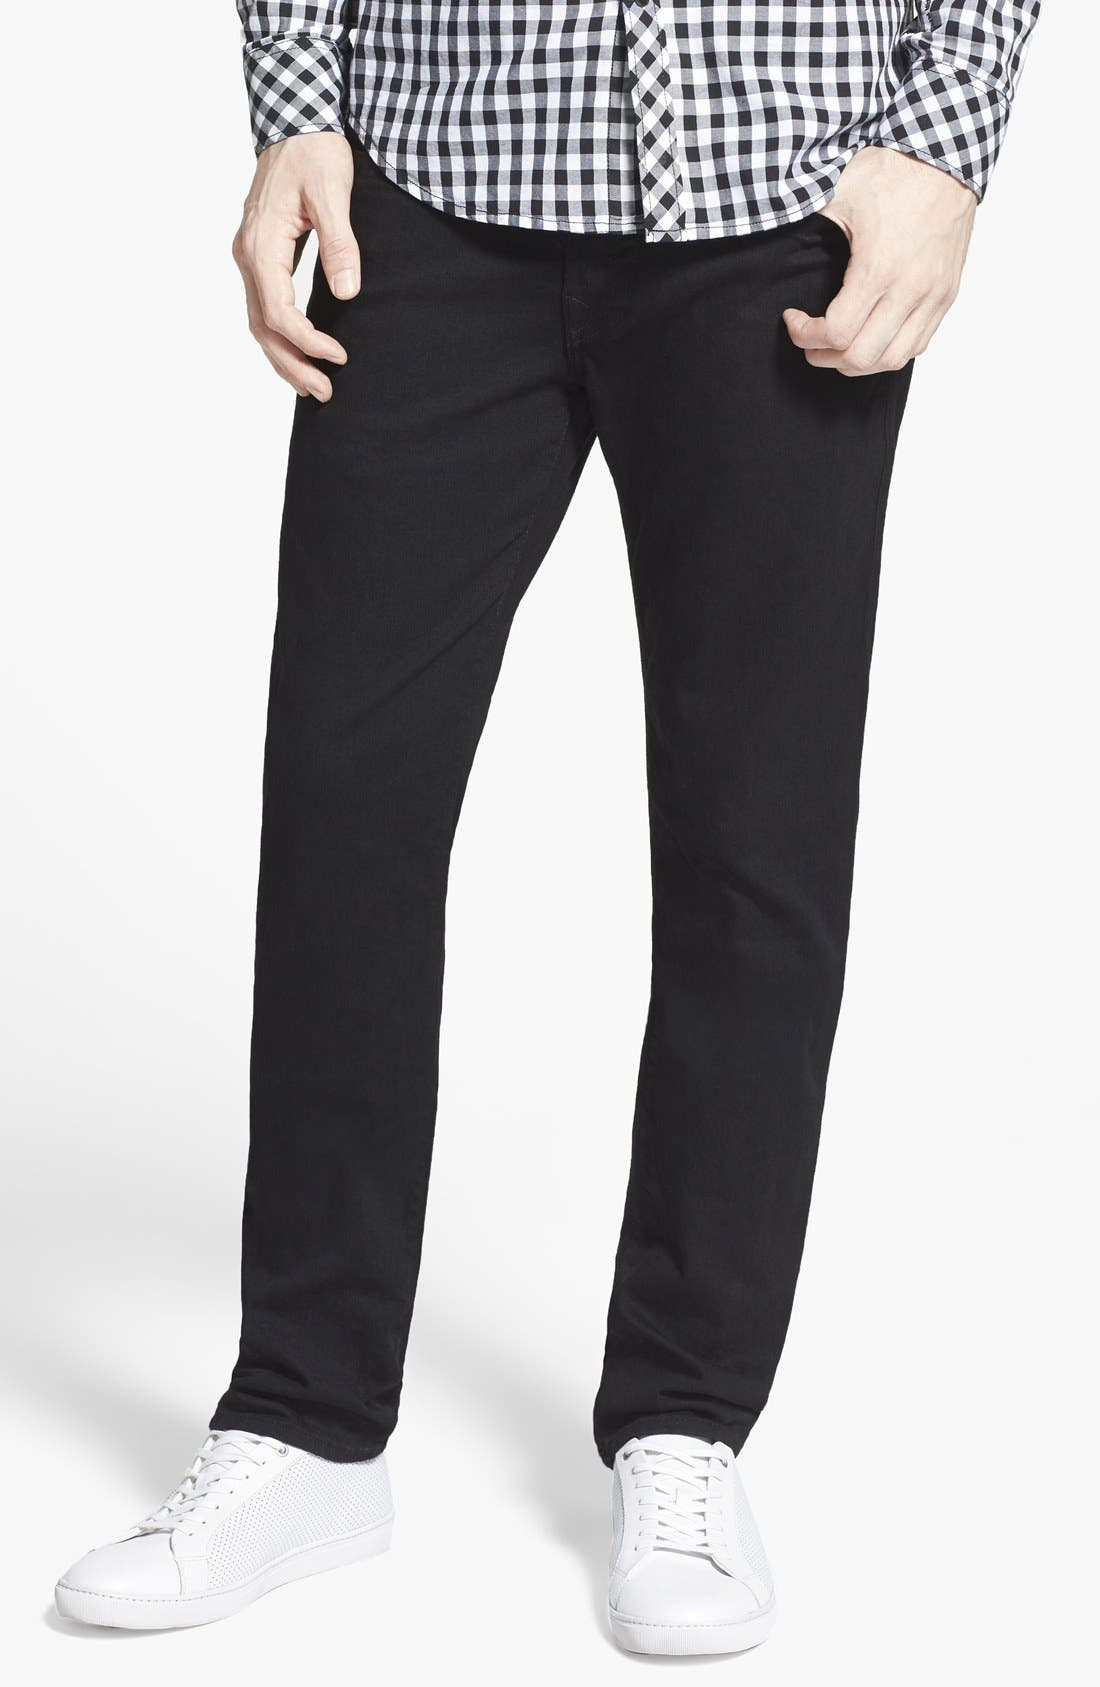 True Religion Brand Jeans 'Rocco' Slim Fit Jeans (Midnight Black)